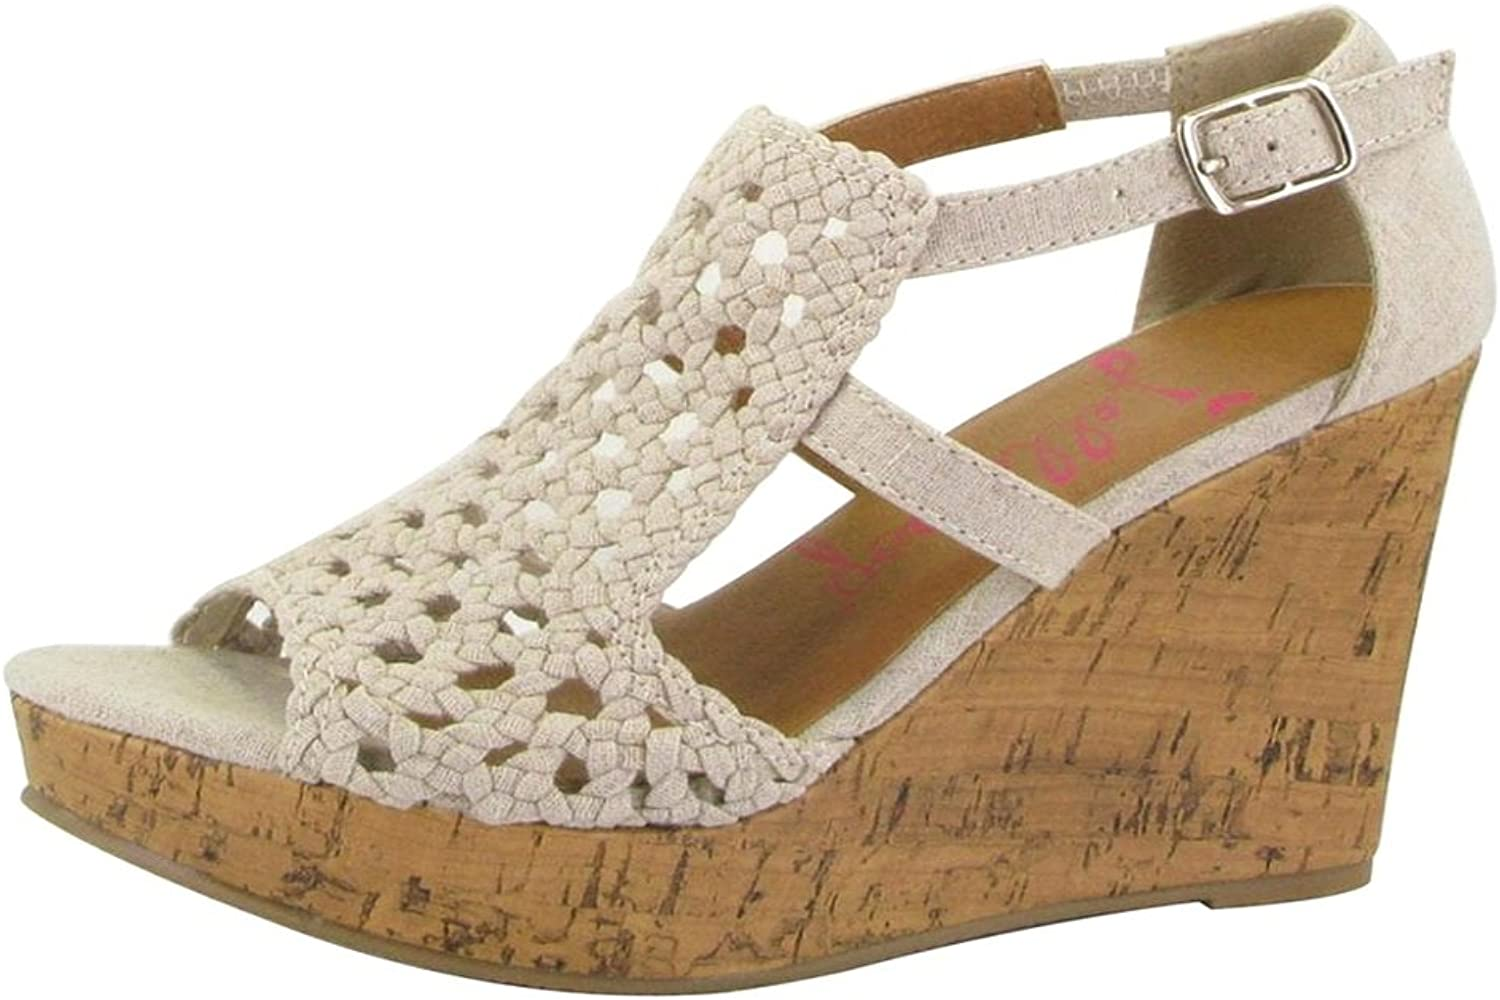 Jellypop Yvonne Womens Wedge Platform Sandals Natural Linen 9